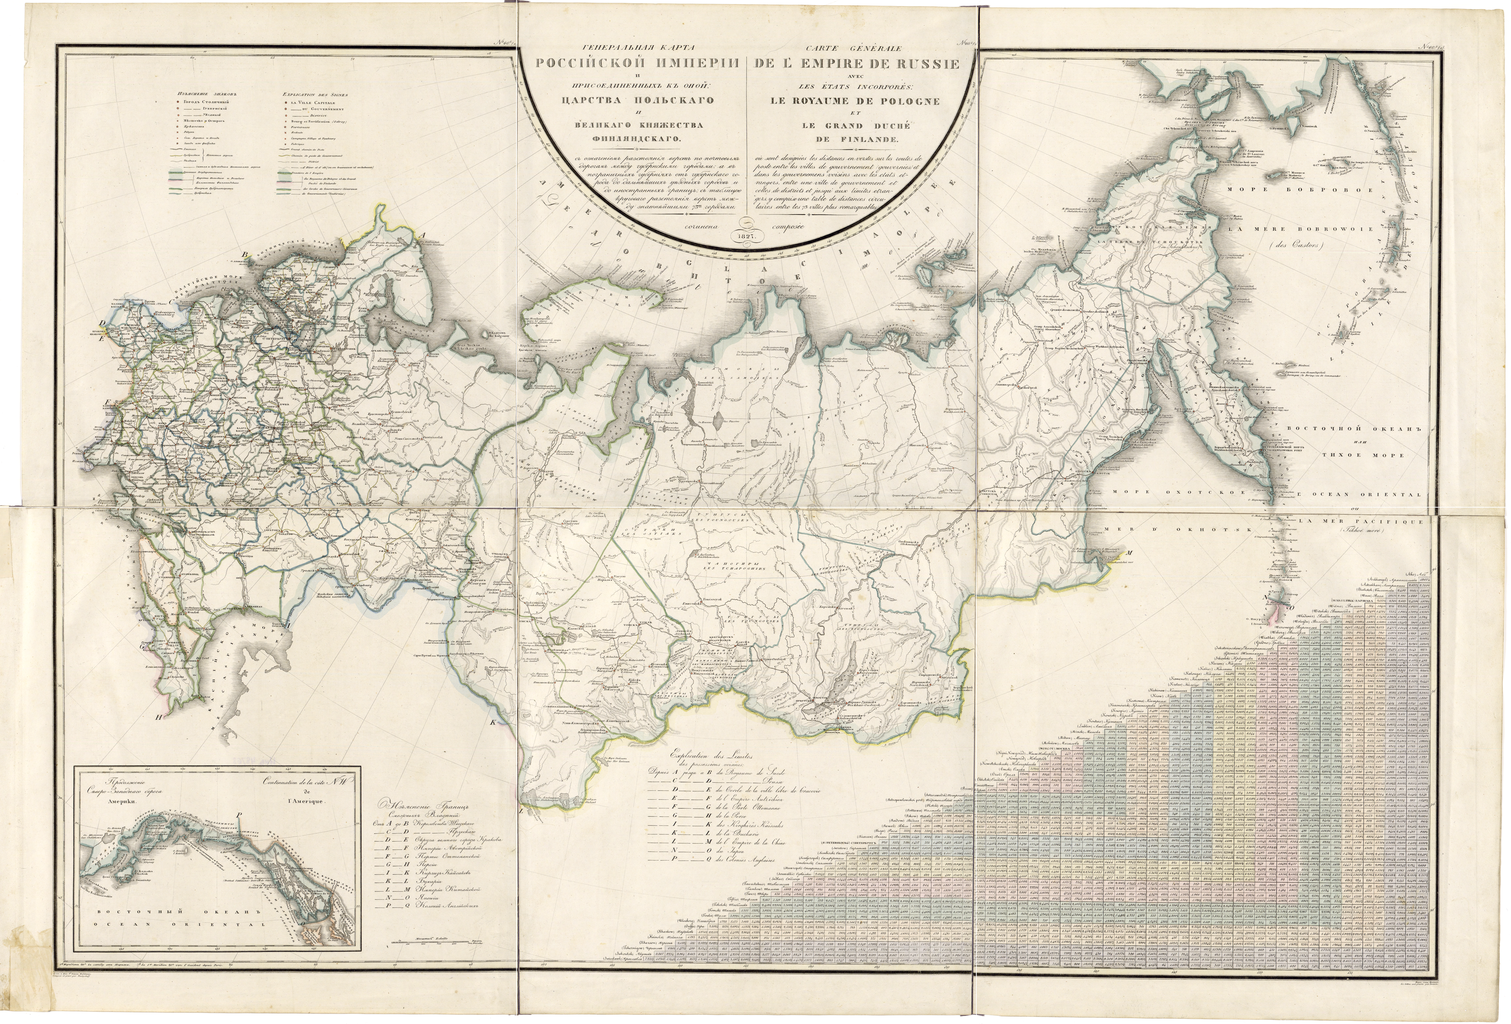 Attlsgeneral map of the russian empire and the neighboring polish attlsgeneral map of the russian empire and the neighboring polish empire and grand duchy of finland with the distance in versts on postal roads between gumiabroncs Image collections